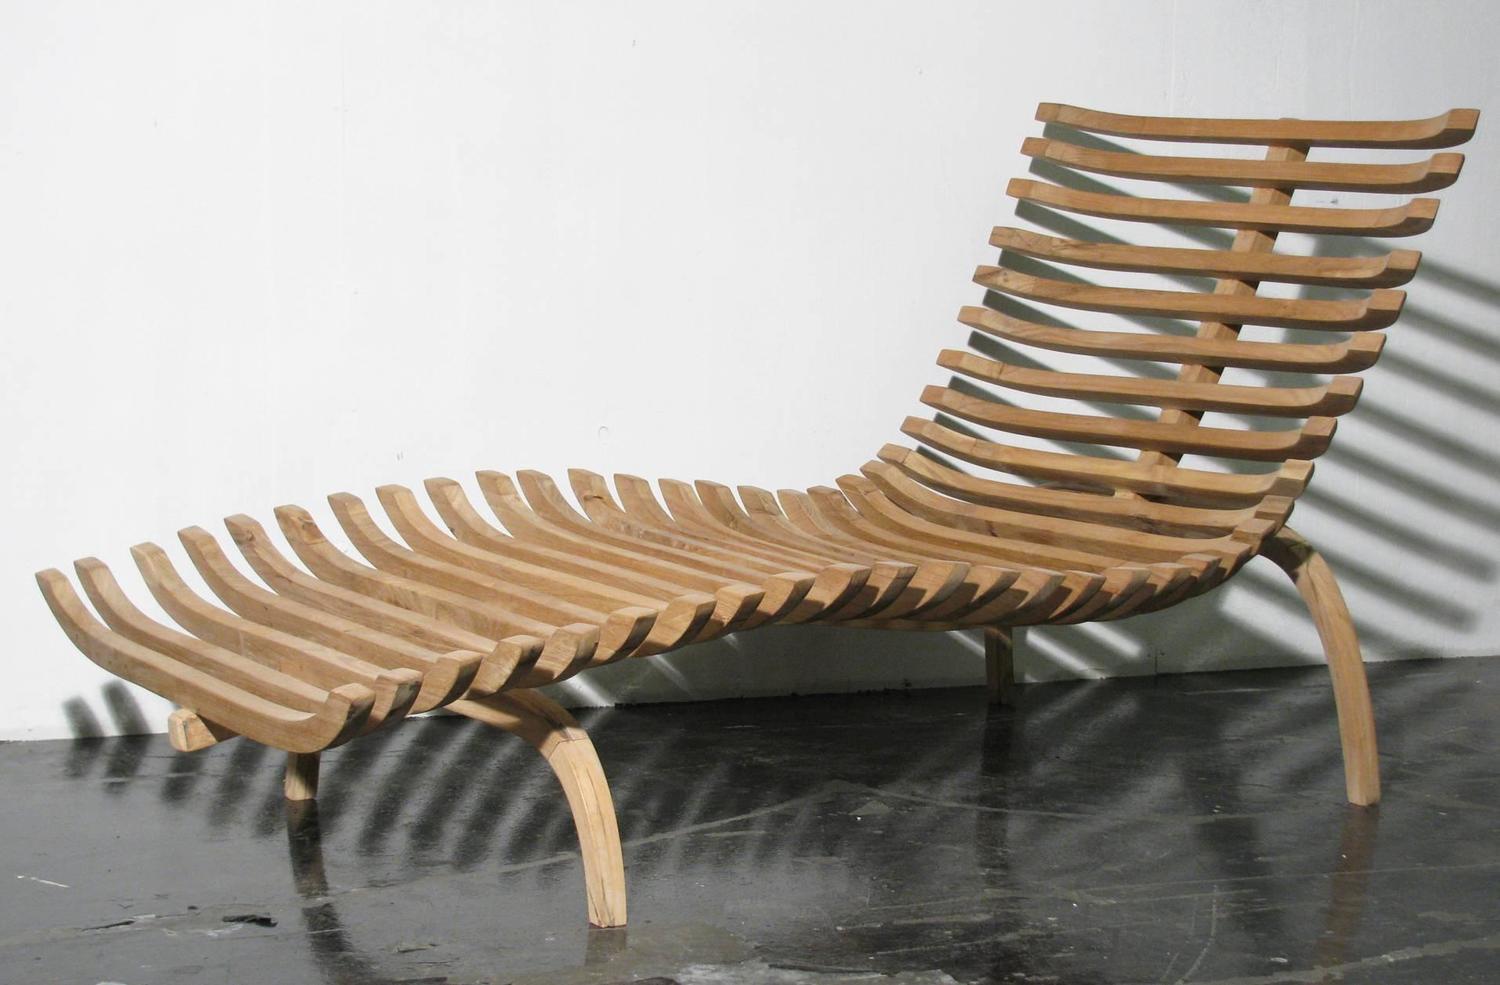 Sculptural Teak Chaise Lounge For Sale at 1stdibs